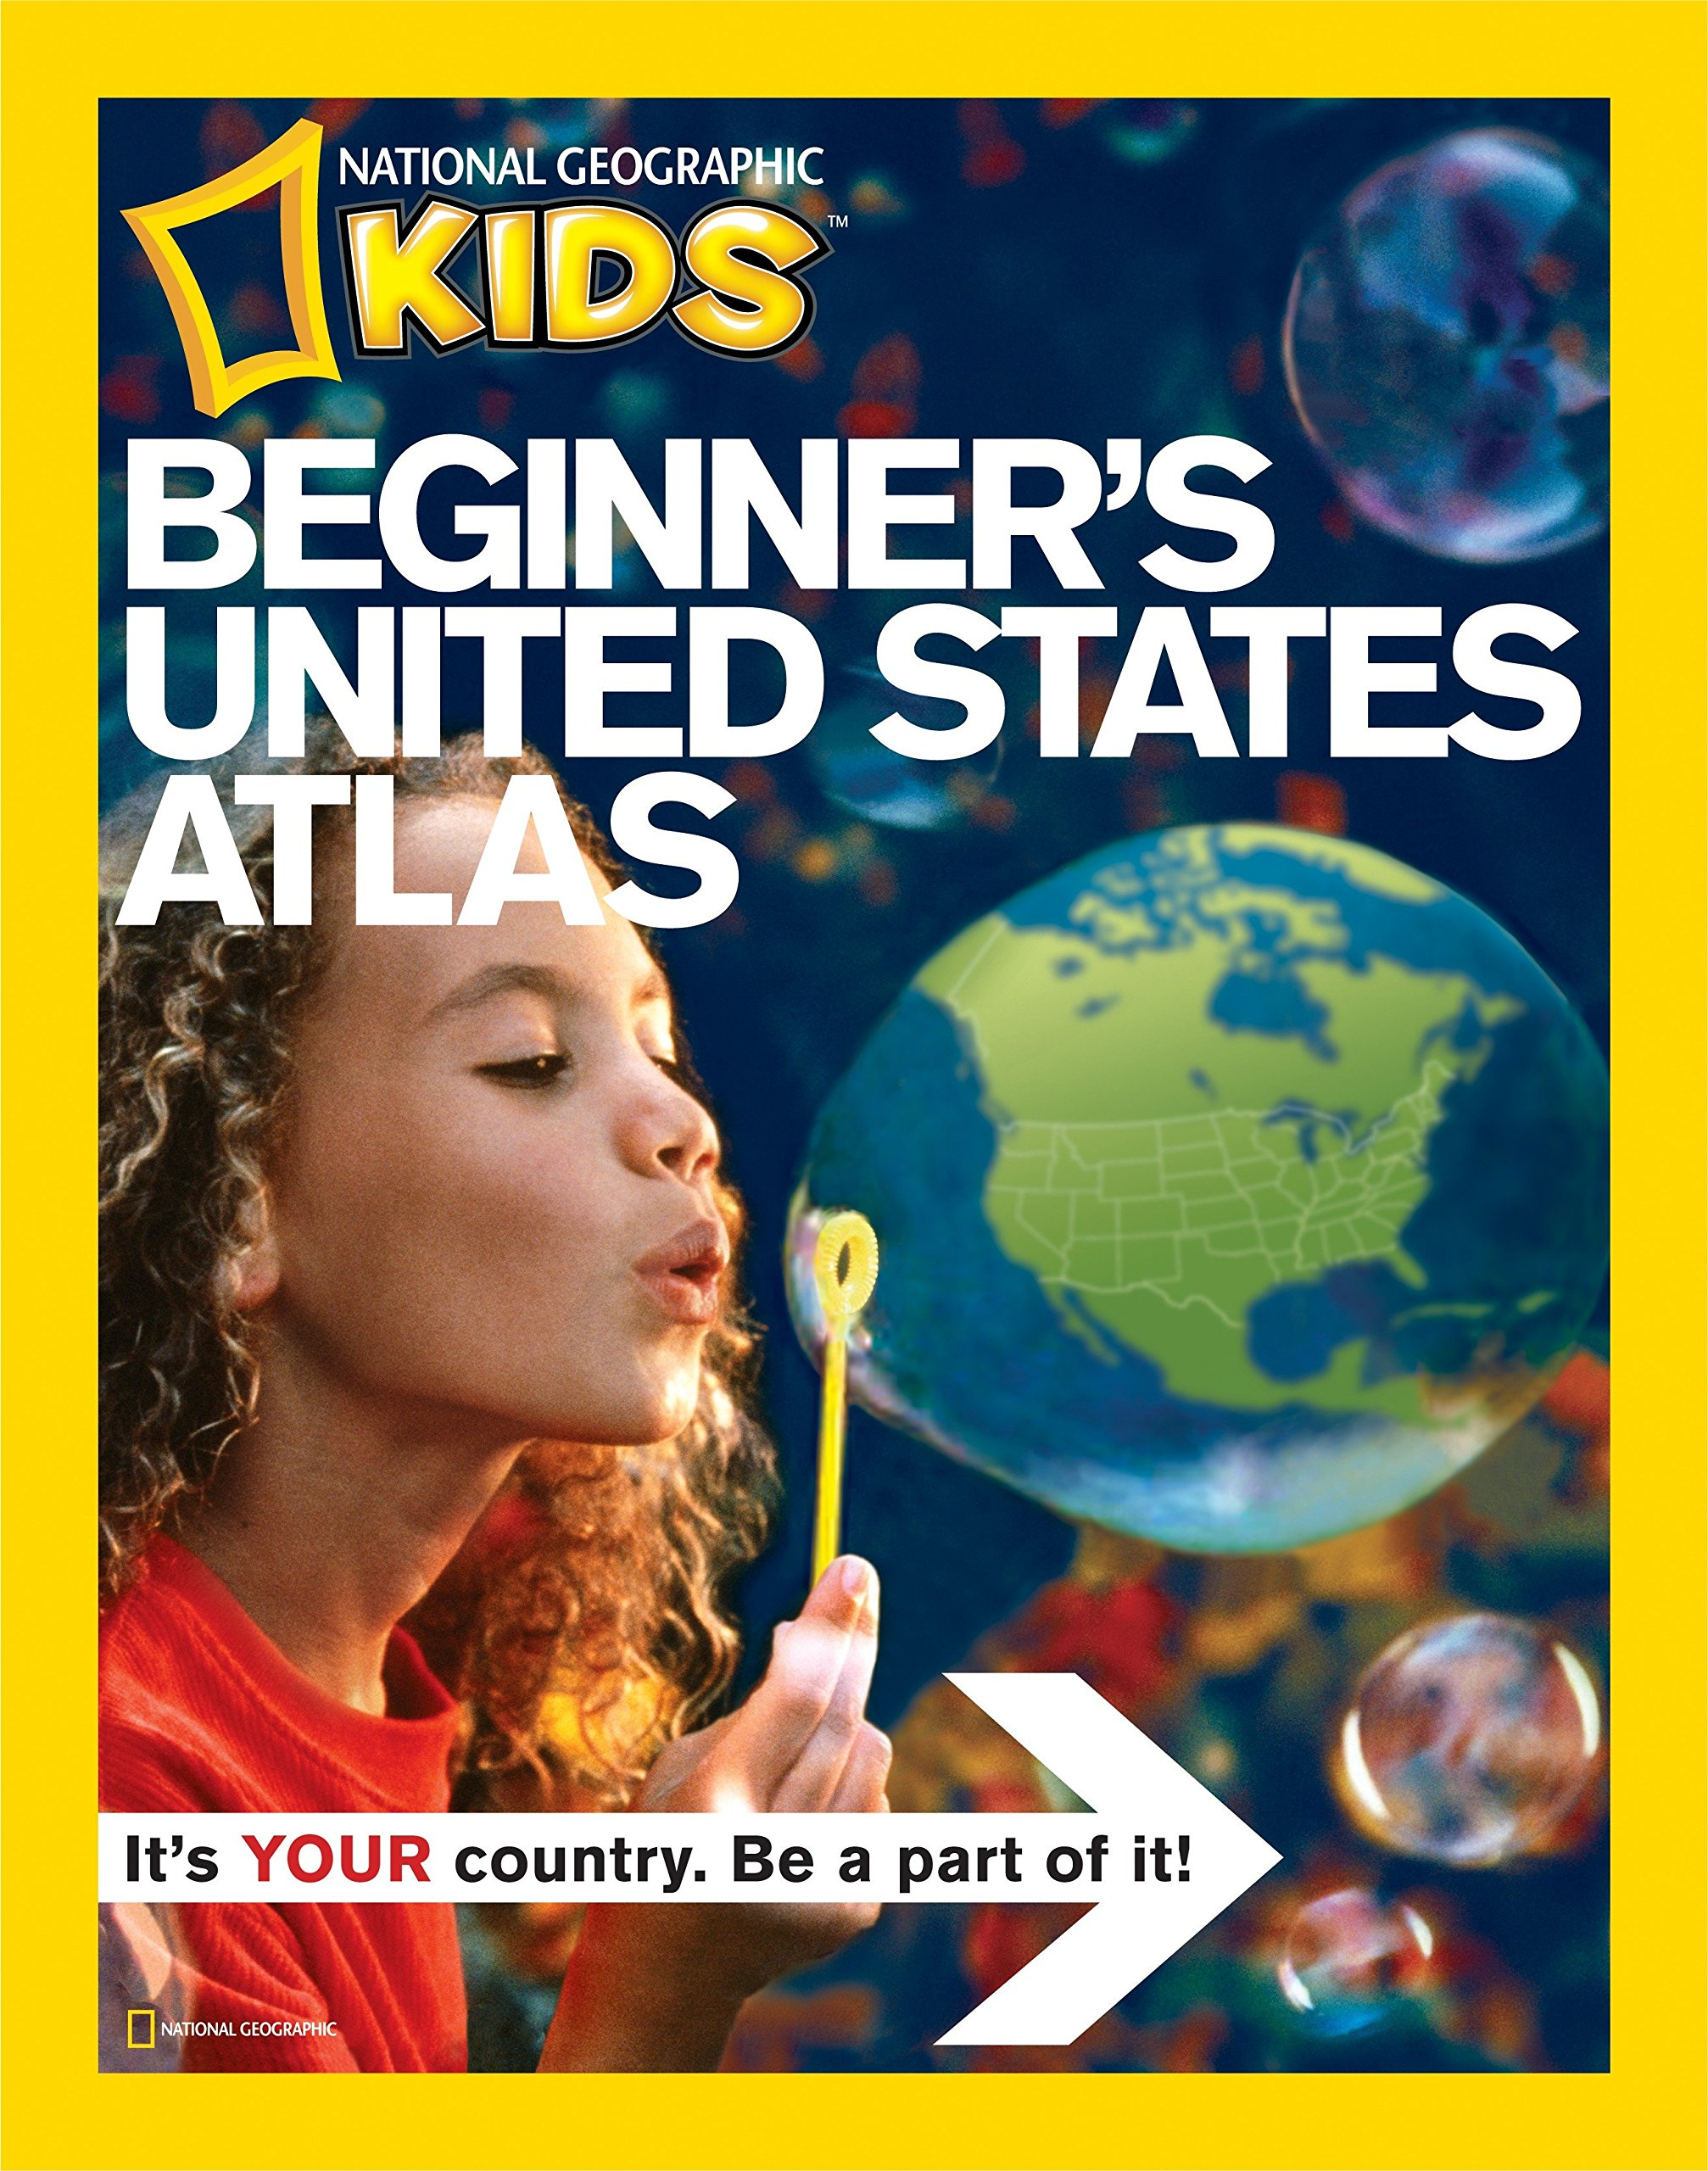 National Geographic Beginner's United States Atlas (National Geographic Kids) ebook